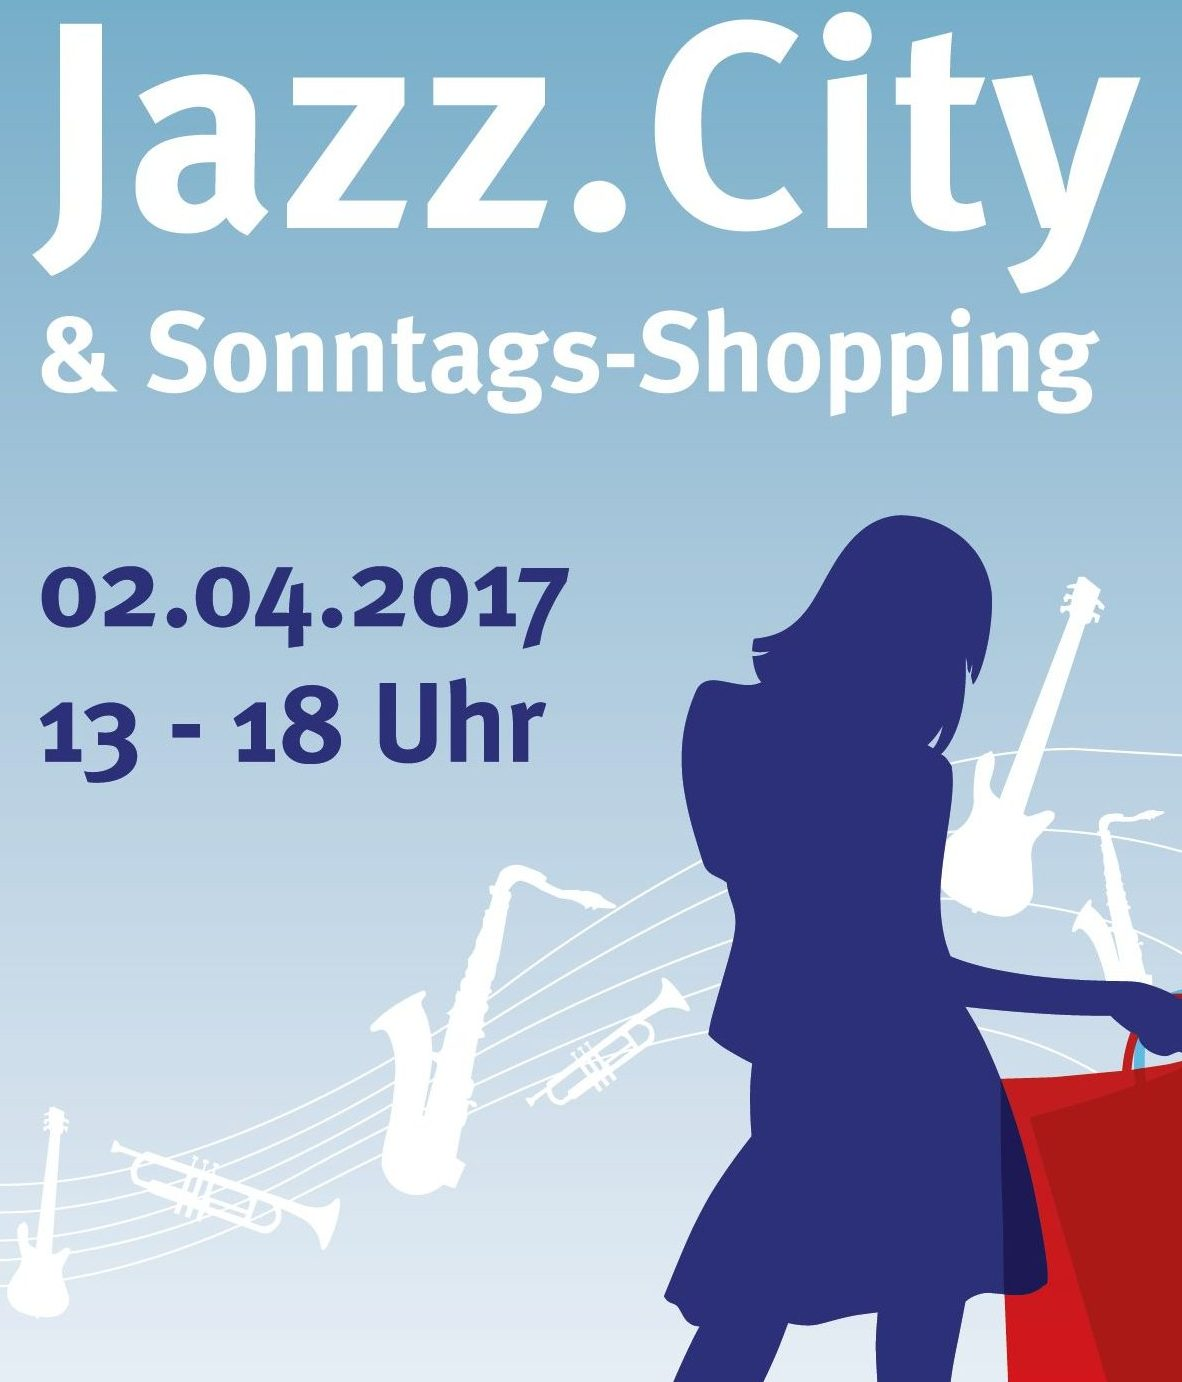 jazz city und verkaufsoffener sonntag in hamburg passagenviertel. Black Bedroom Furniture Sets. Home Design Ideas